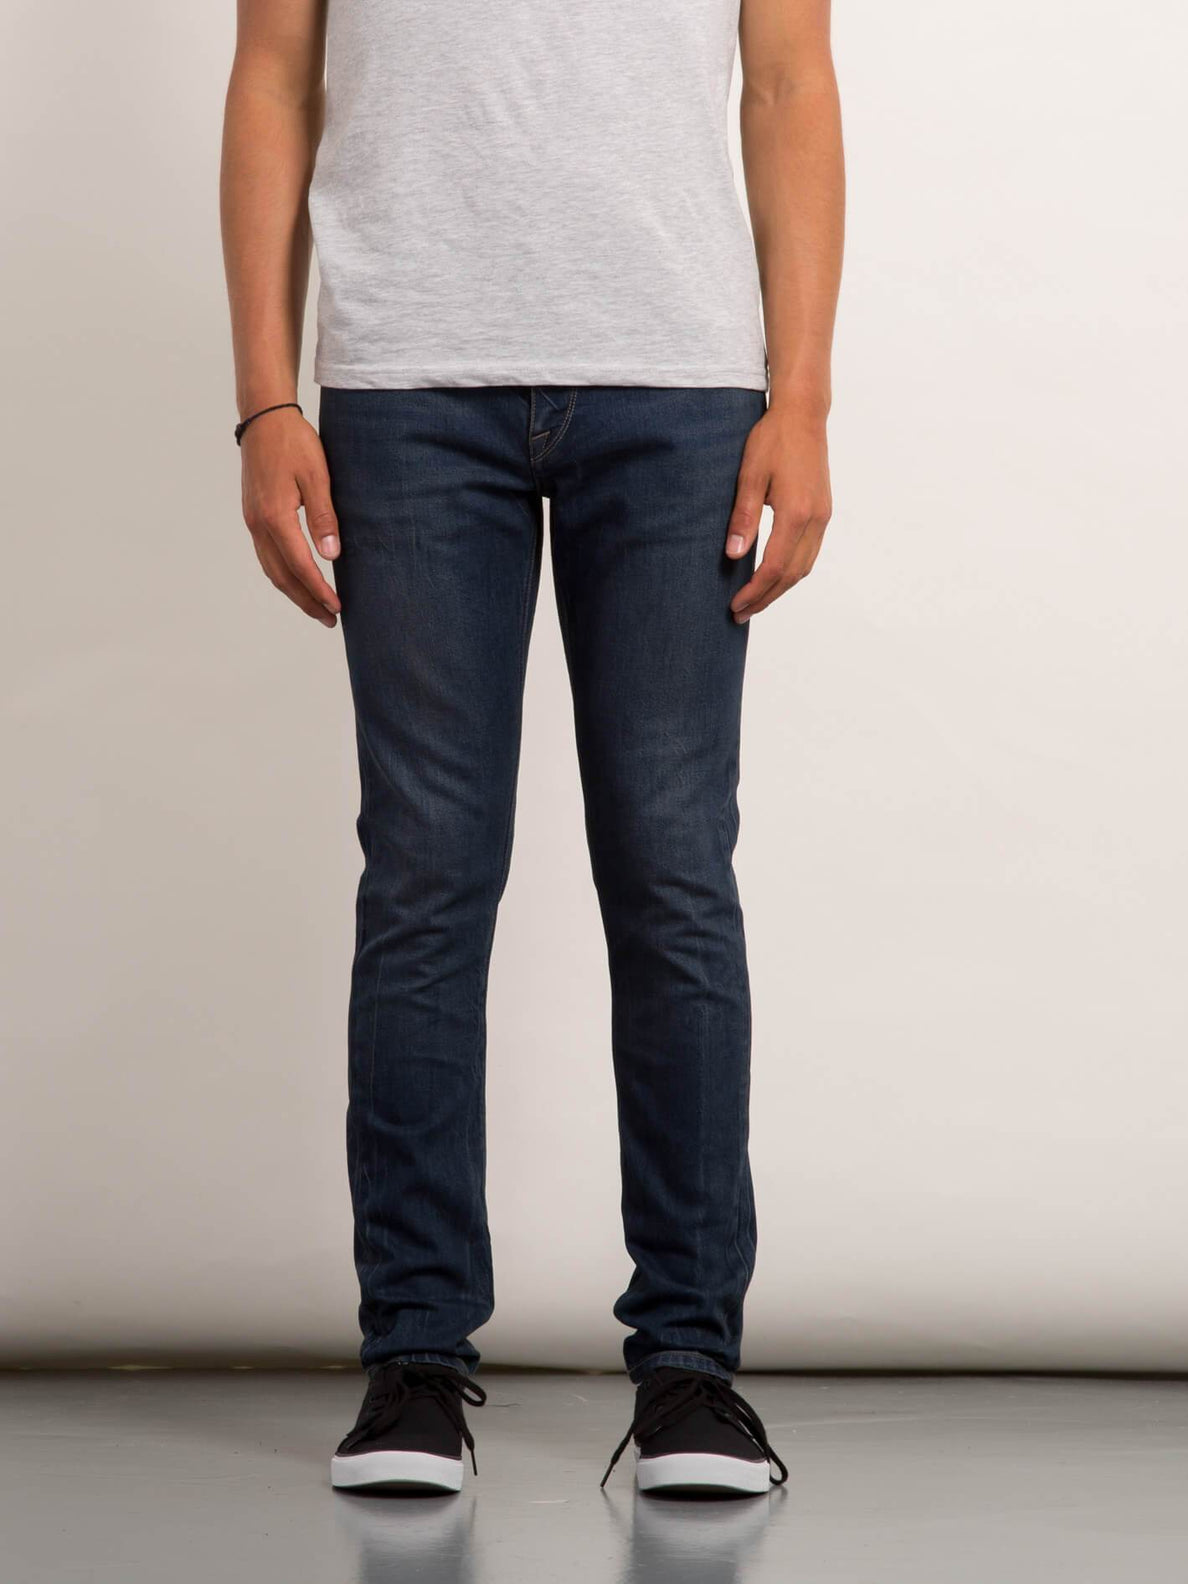 2X4 Tapered Jeans - Faded Vin